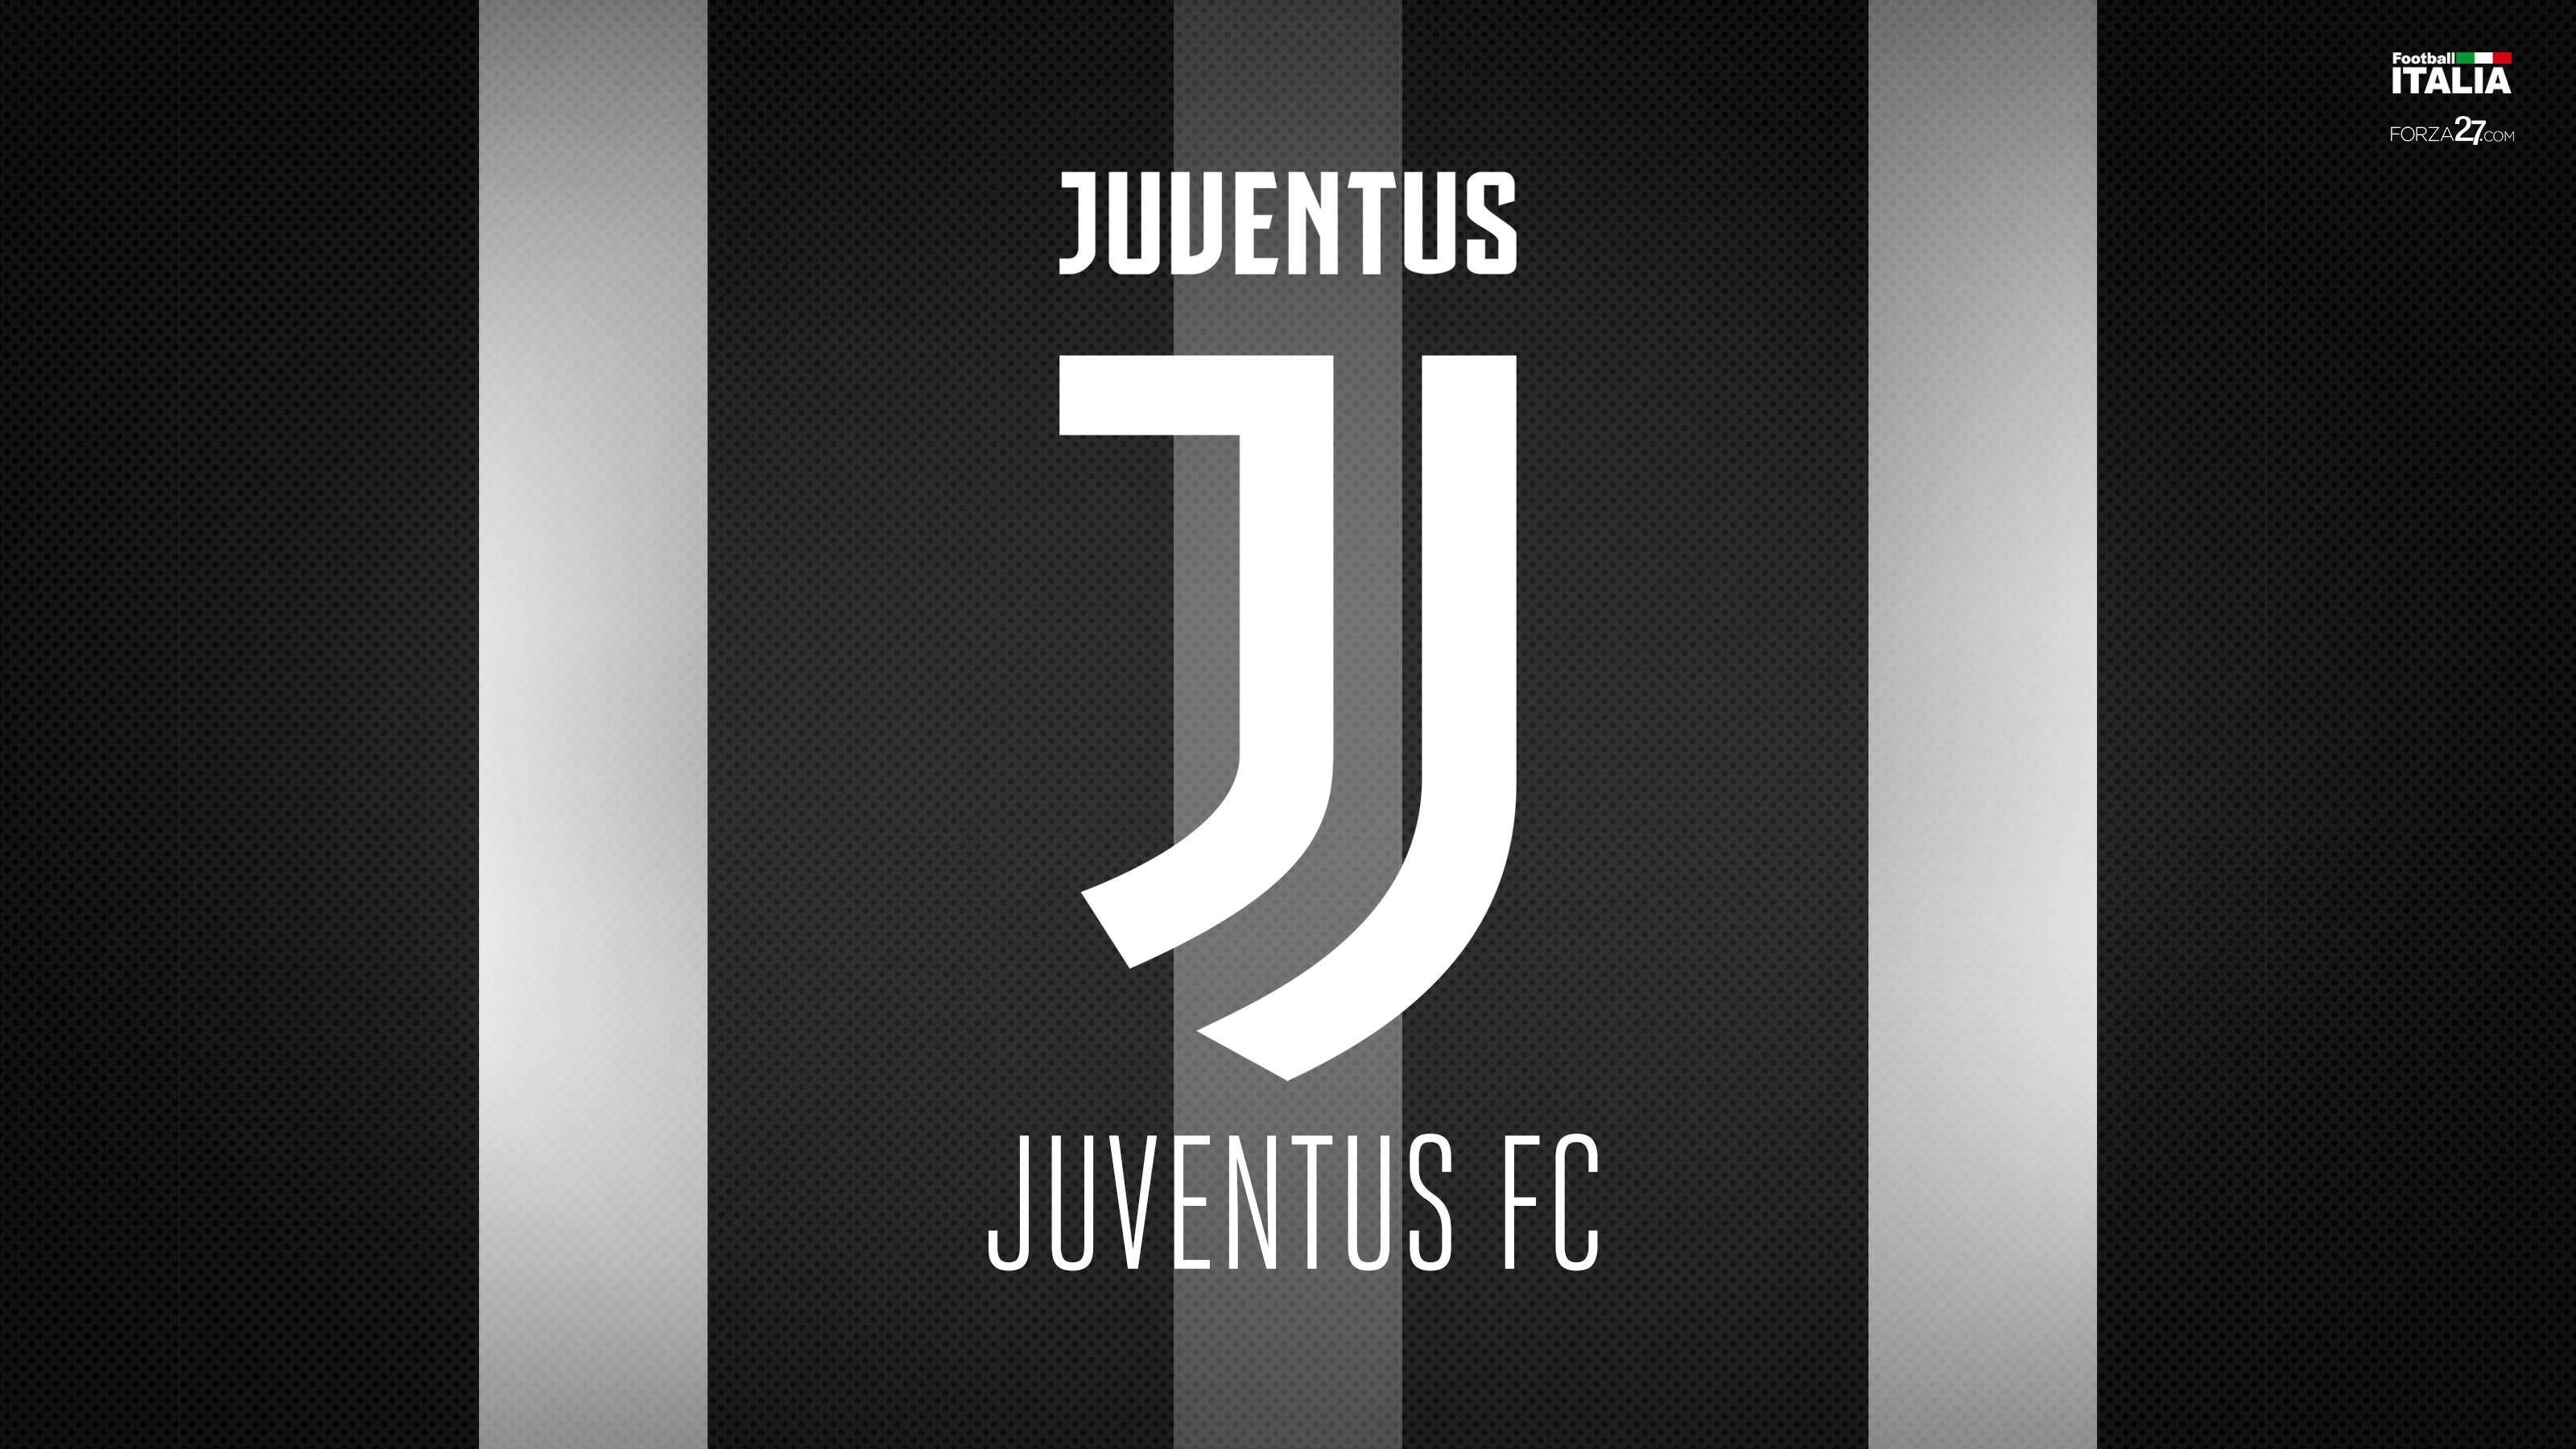 juventus wallpapers top free juventus backgrounds wallpaperaccess juventus wallpapers top free juventus